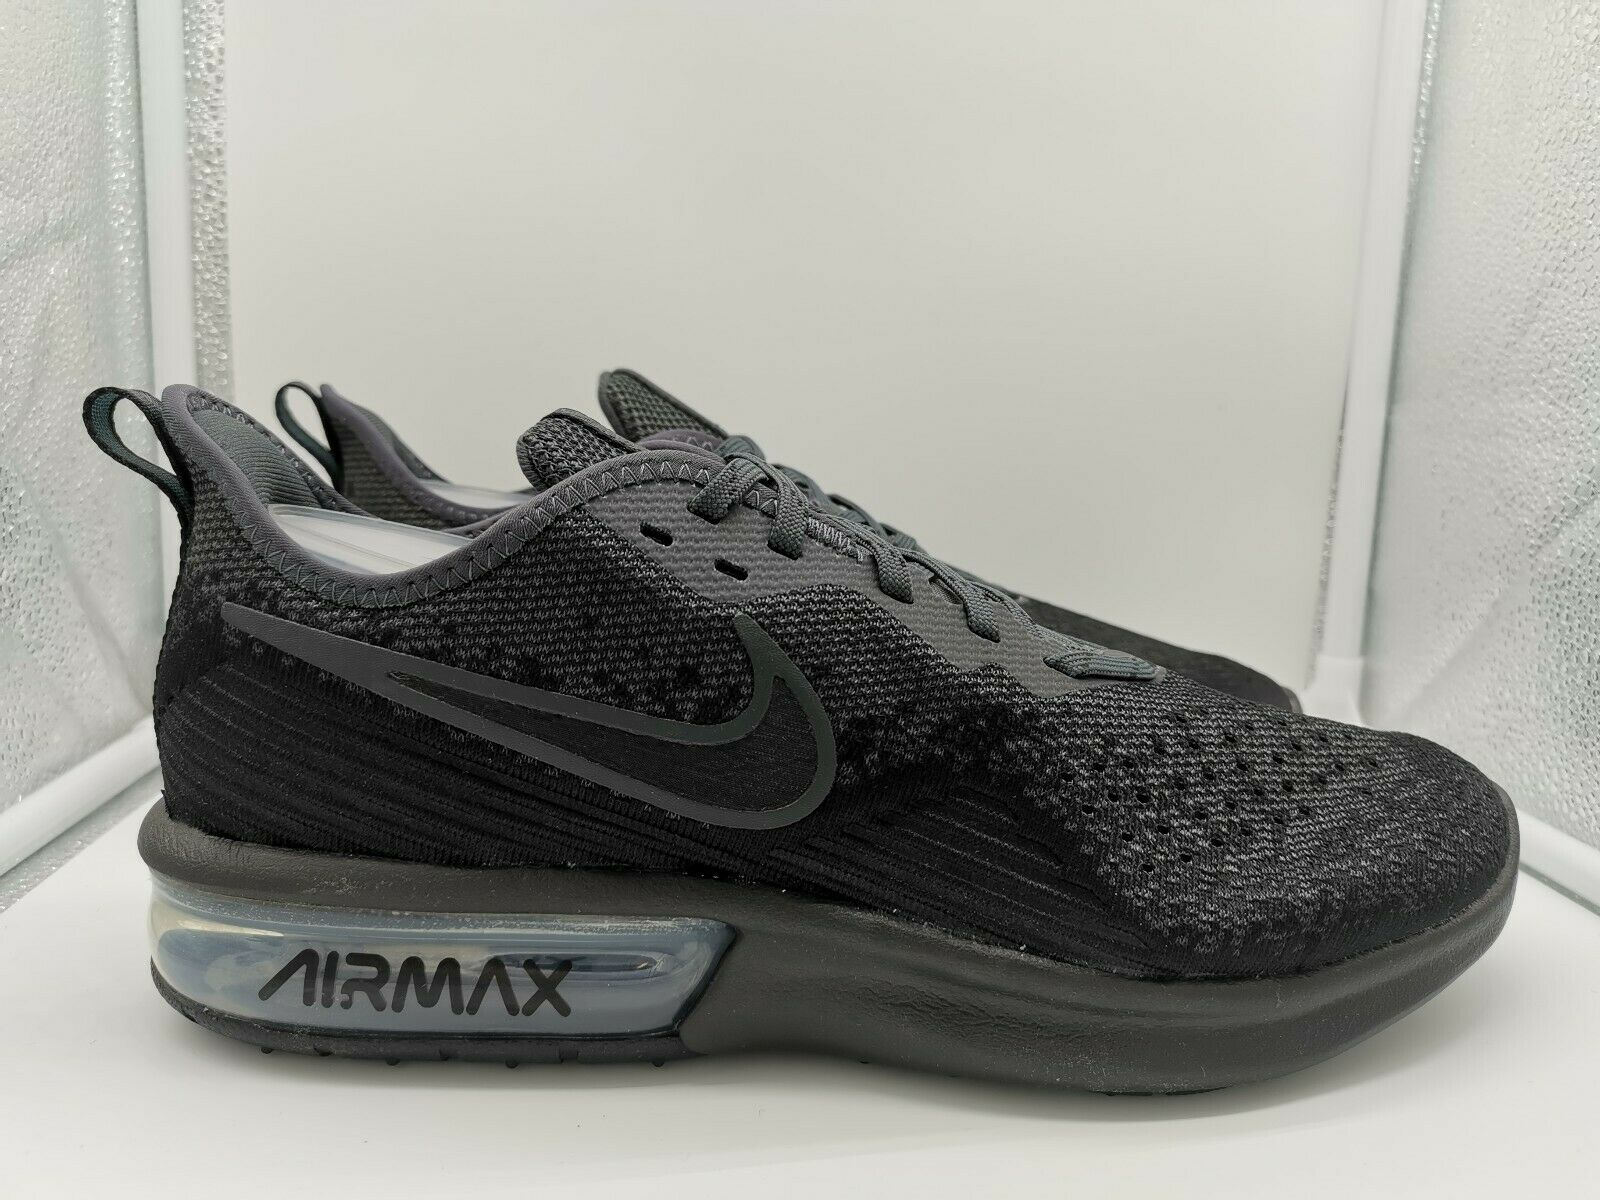 Nike Air Max Sequent 4 UK 10 Black Anthracite AO4485-002